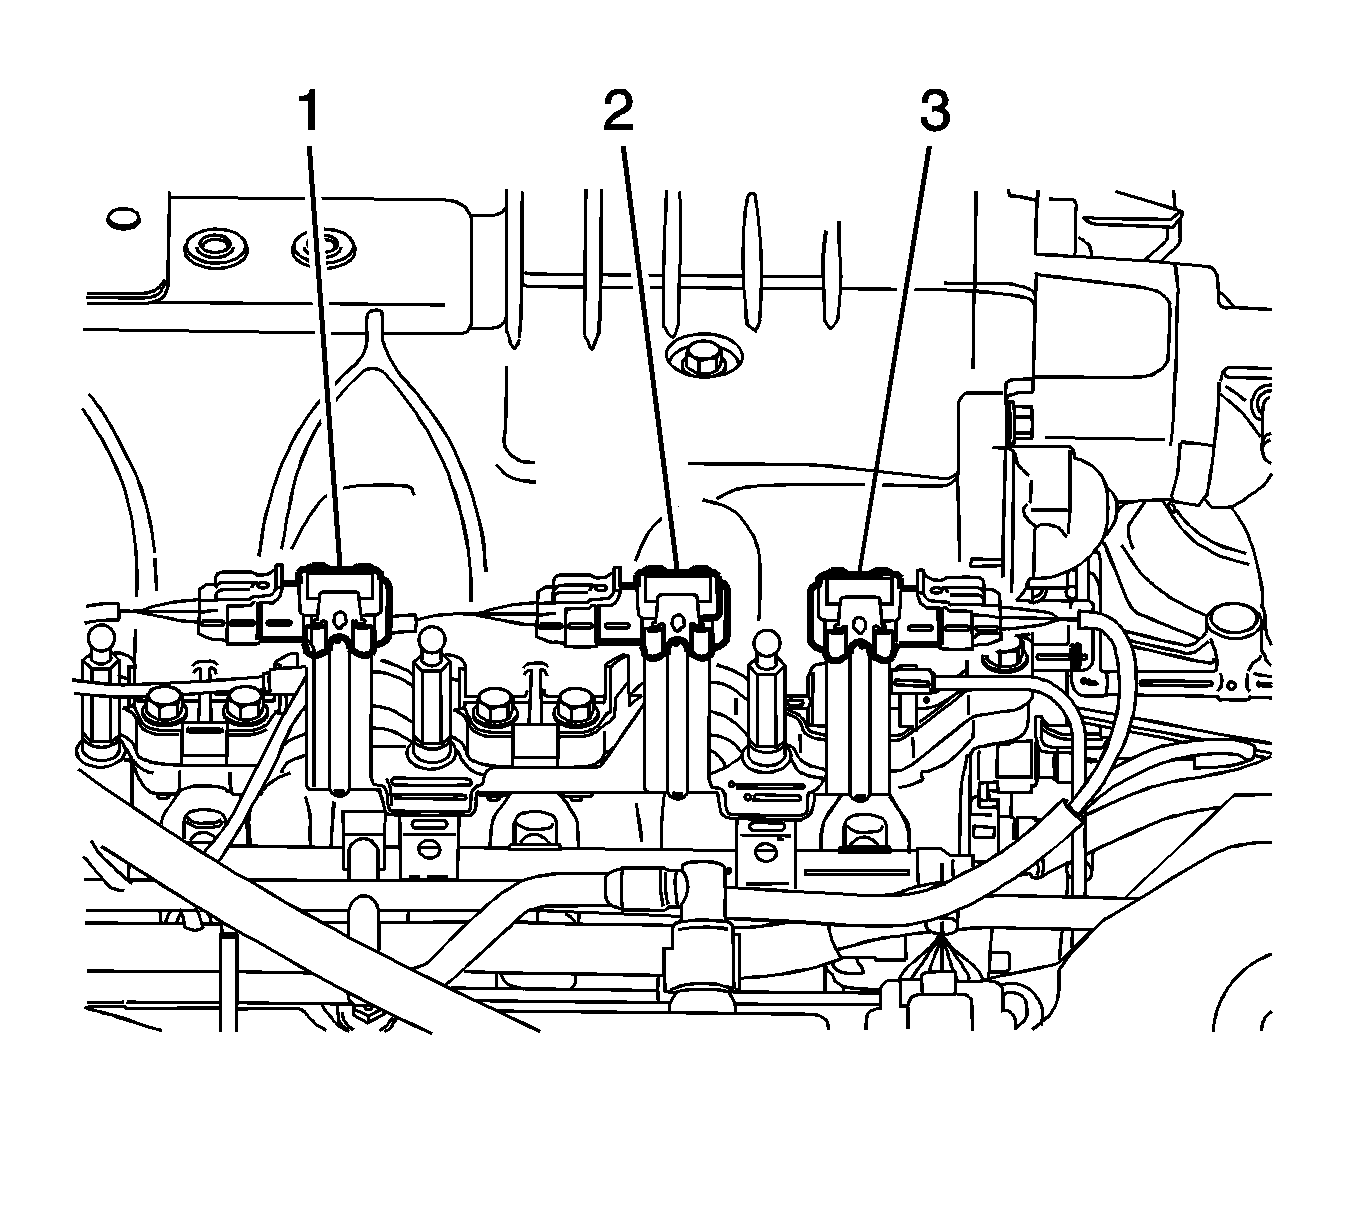 [OT_5451] 2006 Cadillac Cts Engine Diagram Schematic Wiring